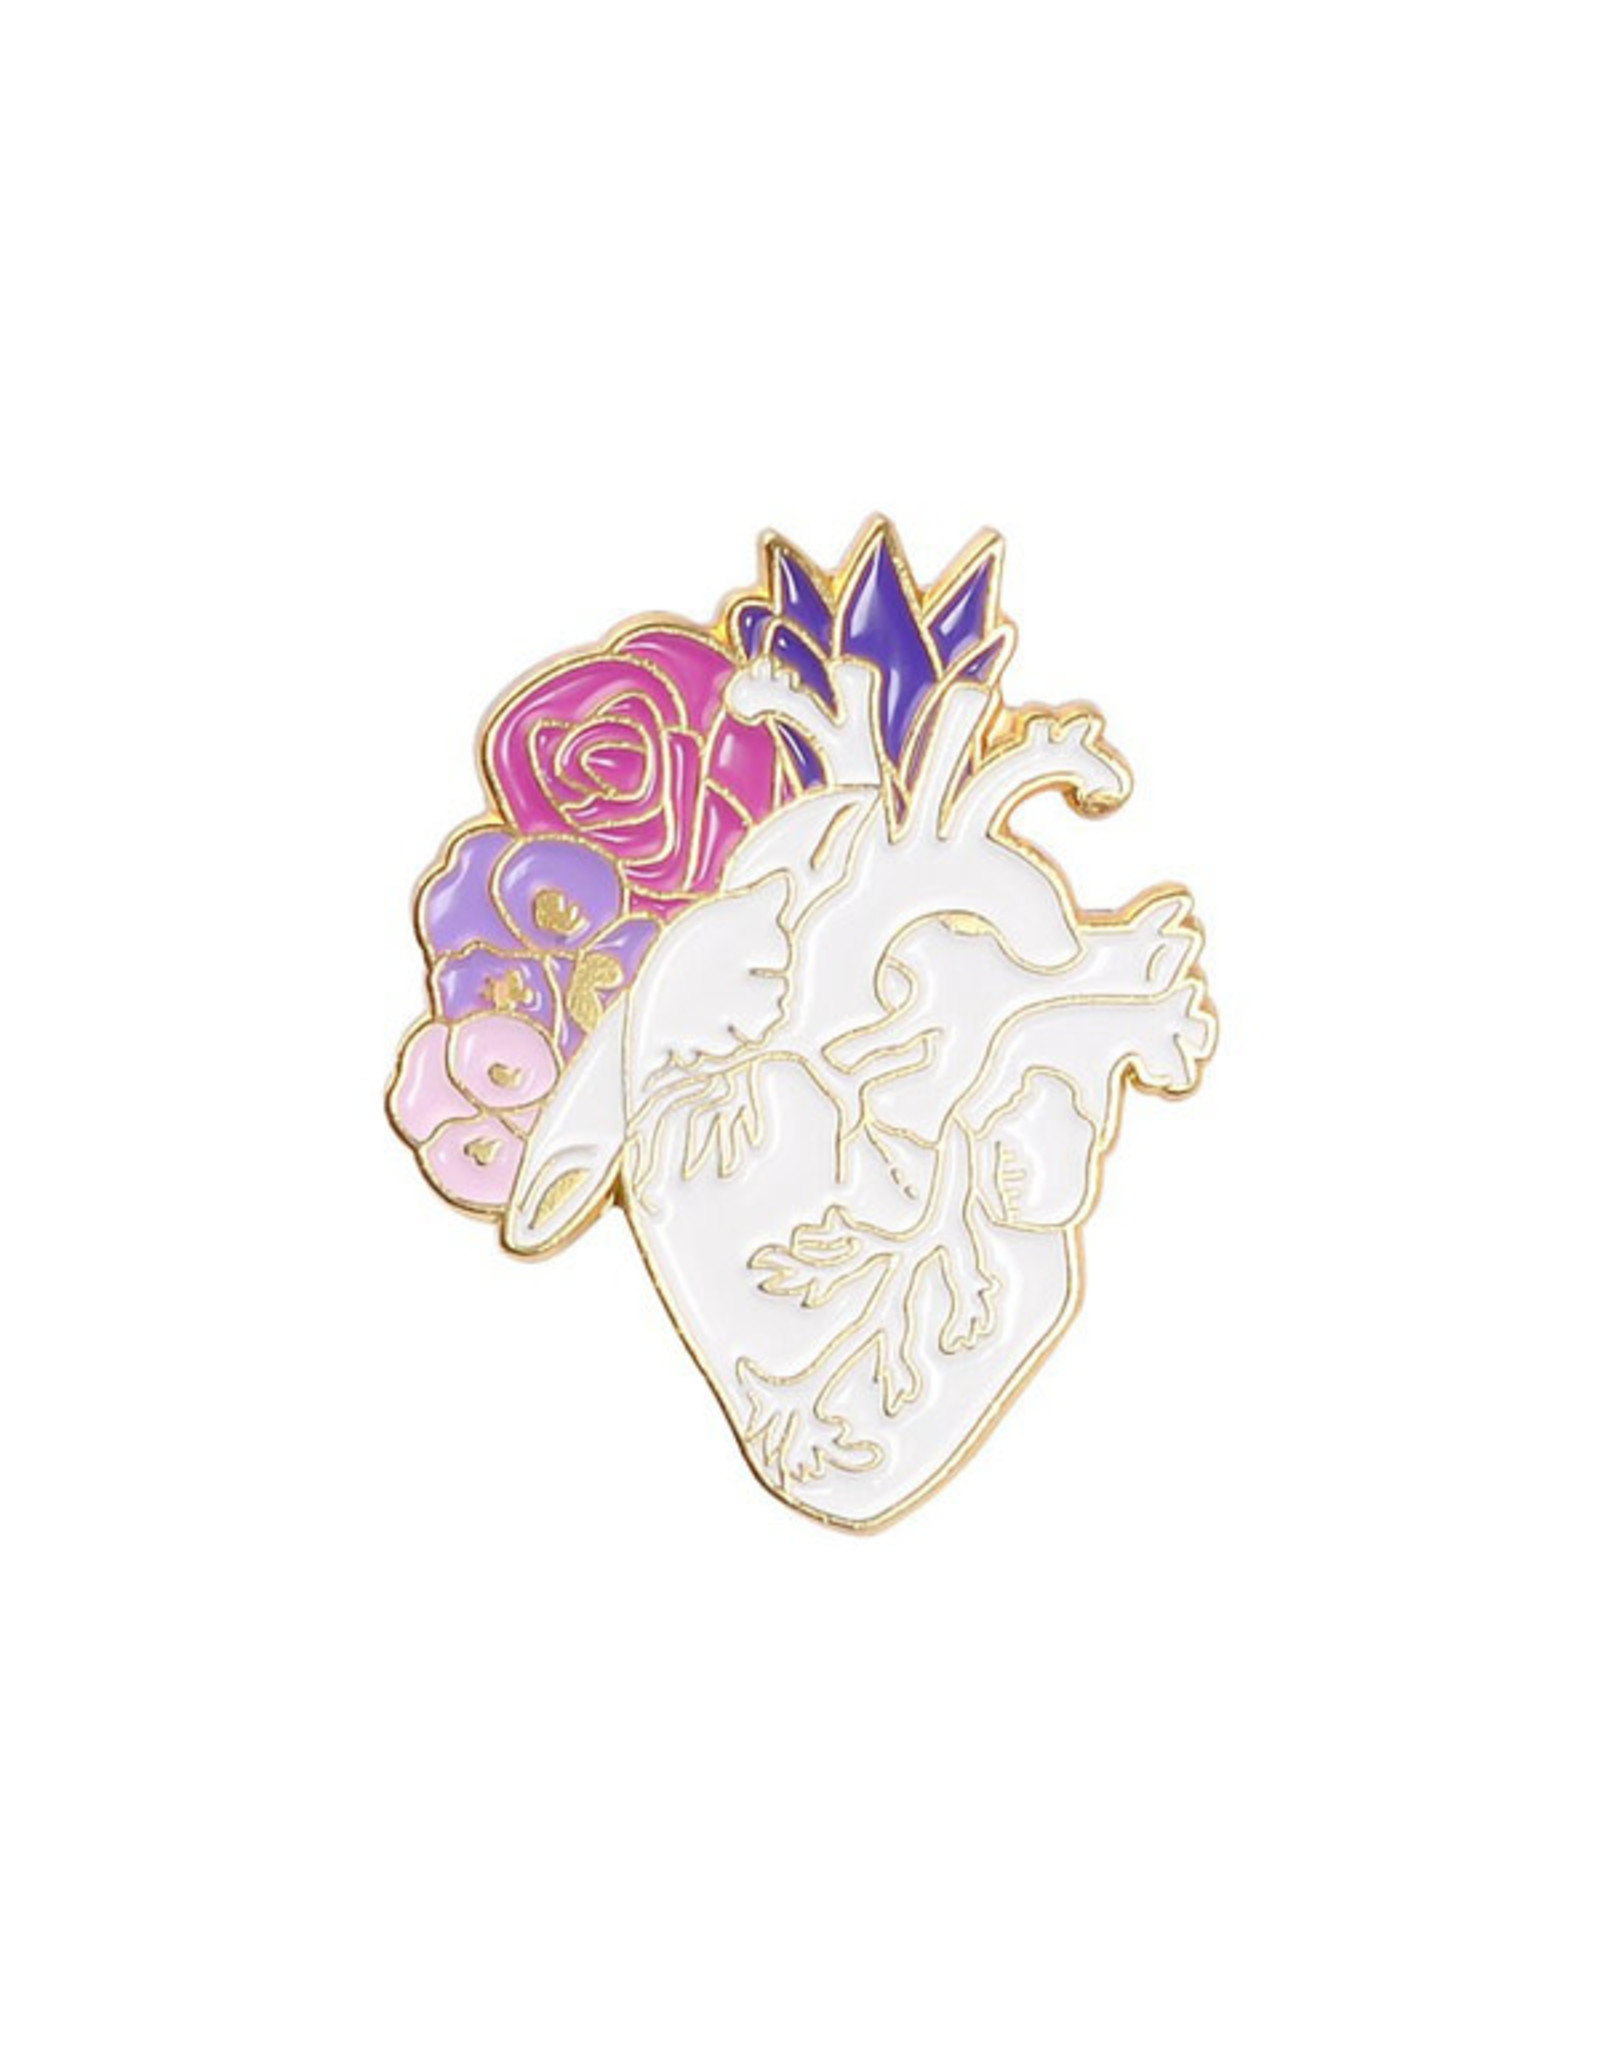 Pin - Heart With Flowers - White